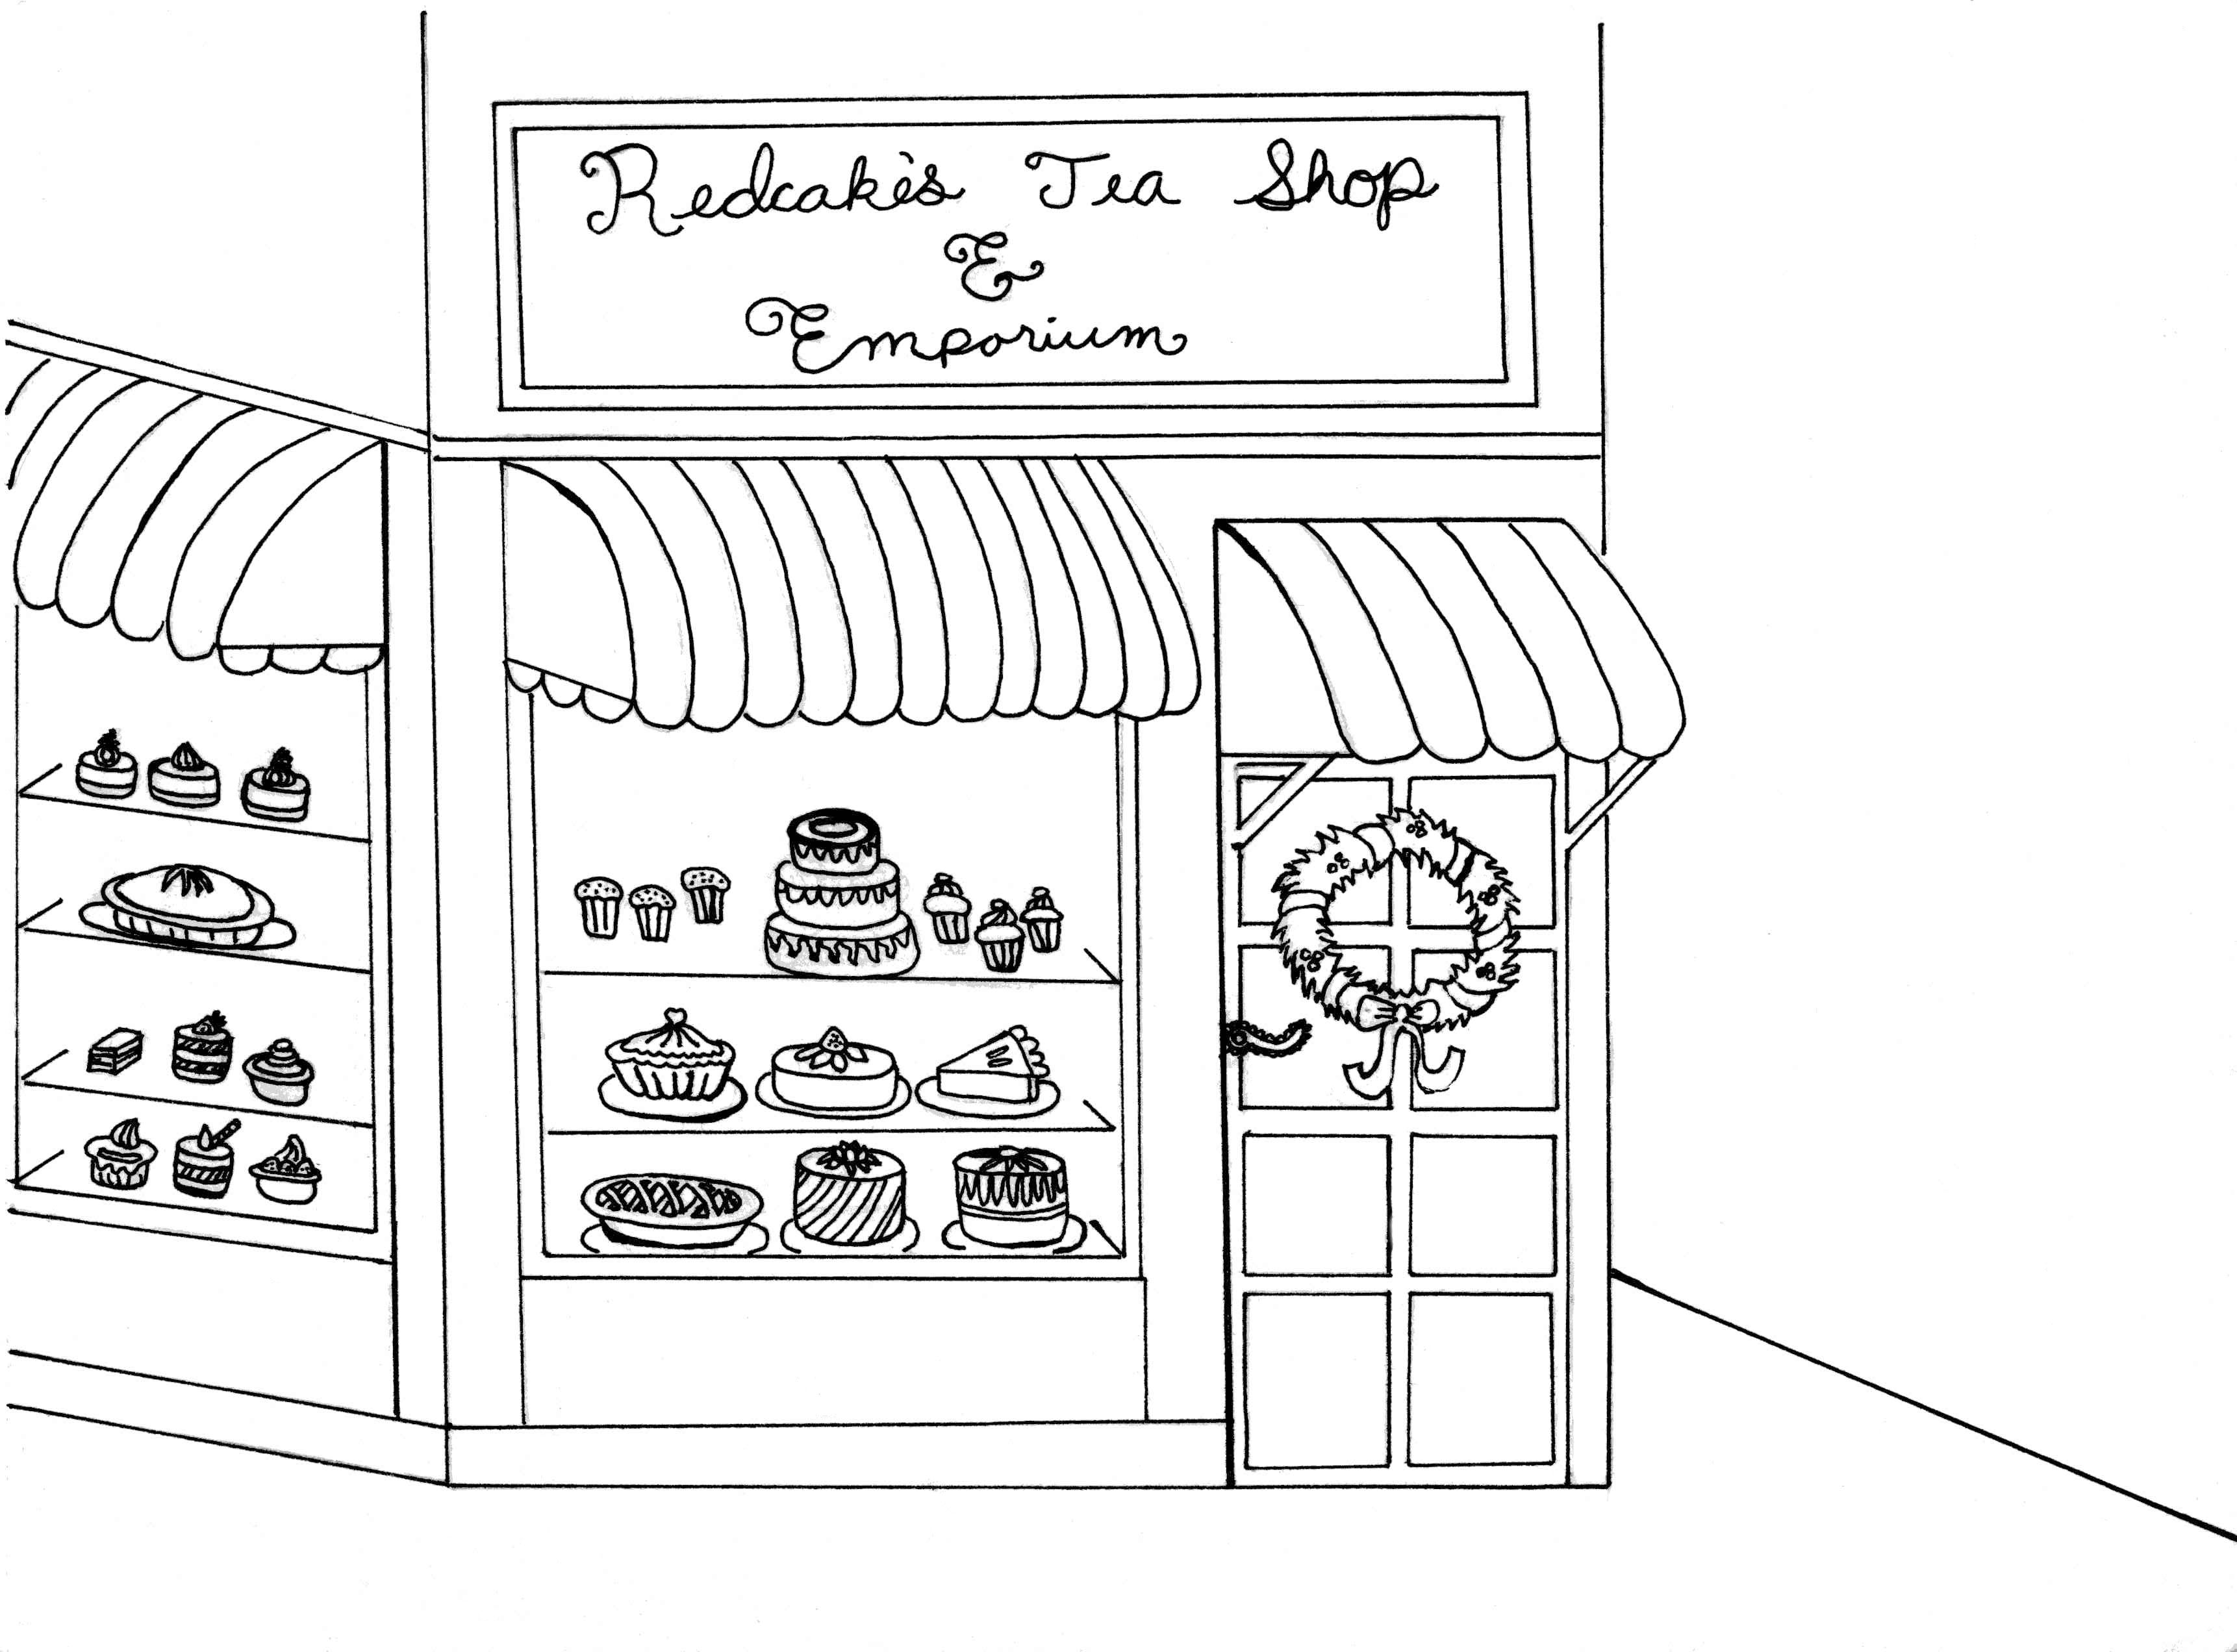 Redcakes Tea Shop S Coloring Page Art By Stand In